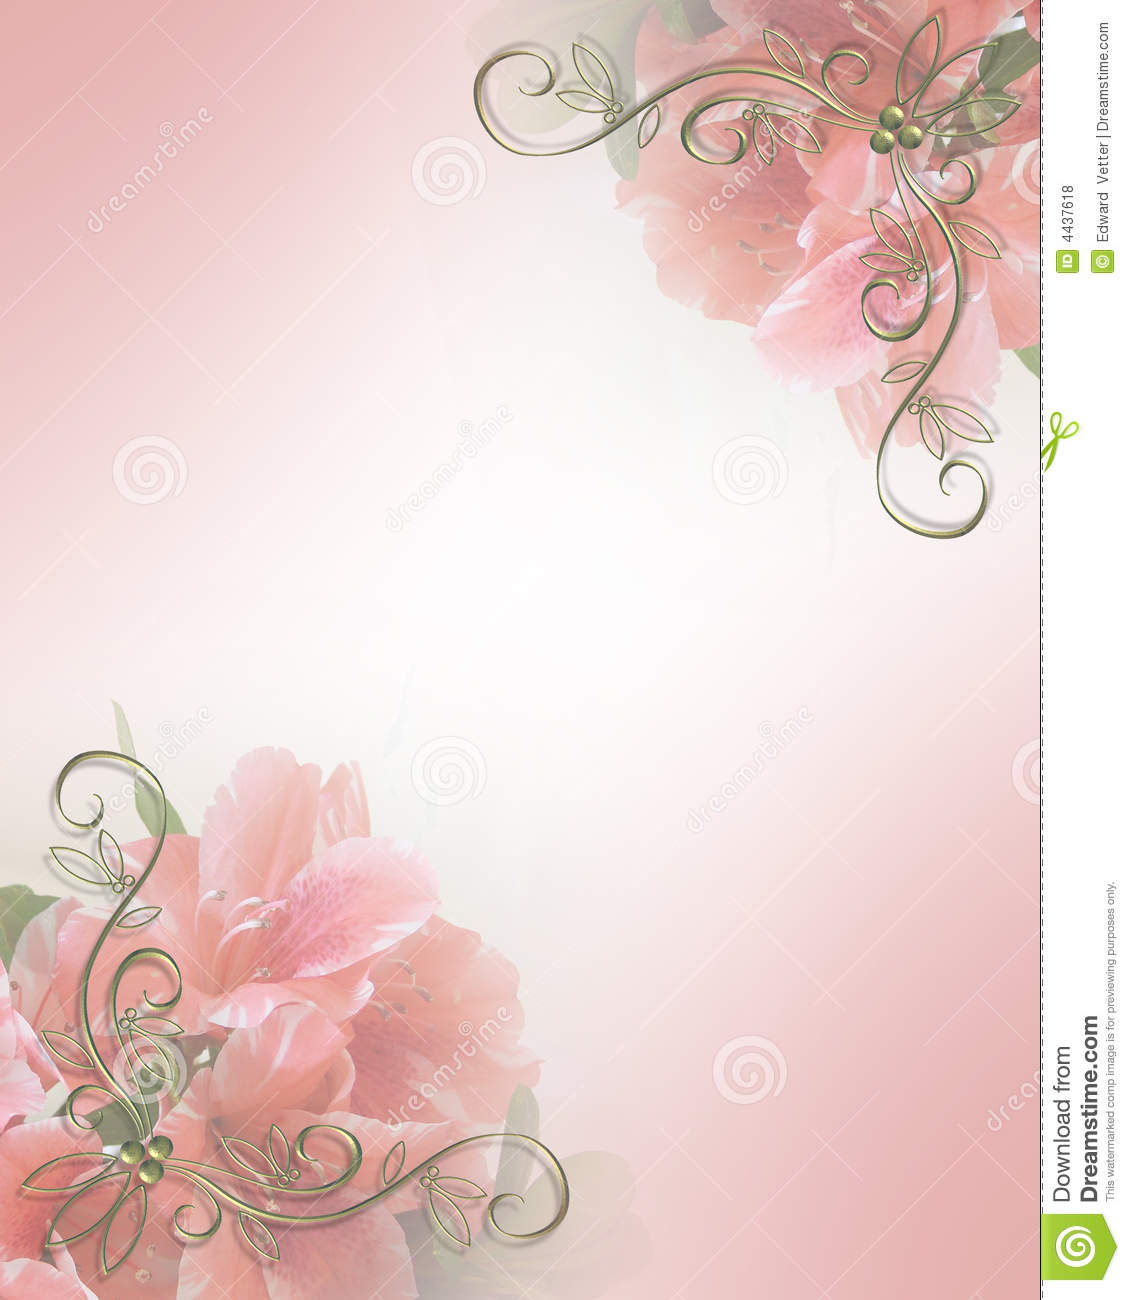 Wedding Invitation Pink Floral Design Royalty Free Stock